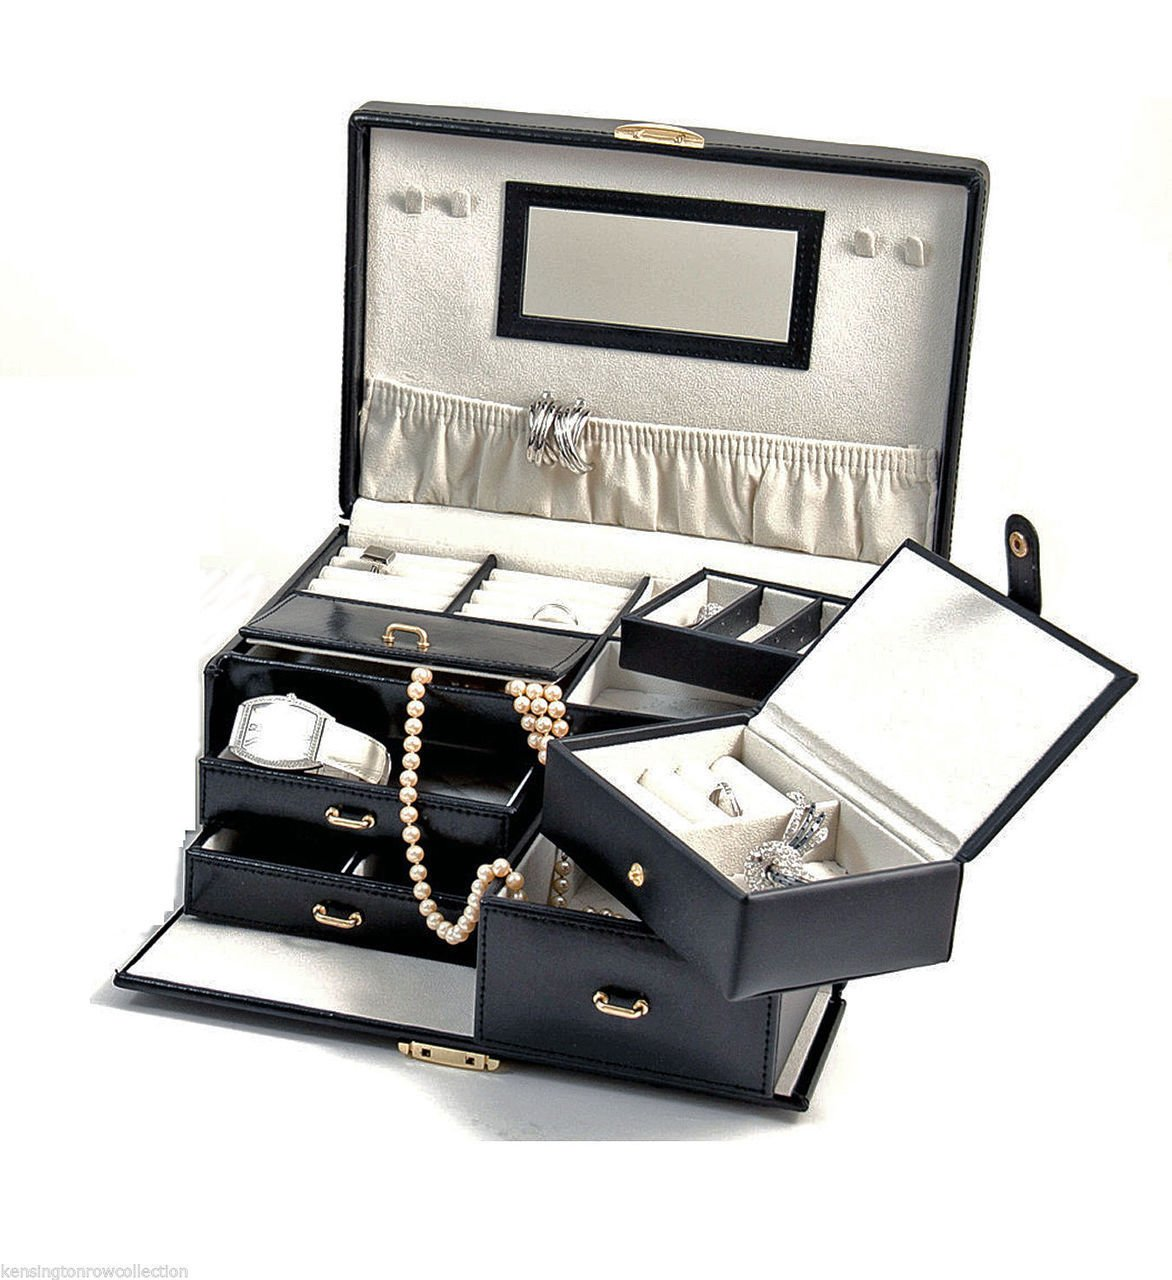 ''INVERNESS'' BLACK LEATHER JEWELRY BOX WITH REMOVABLE TRAVEL CASE